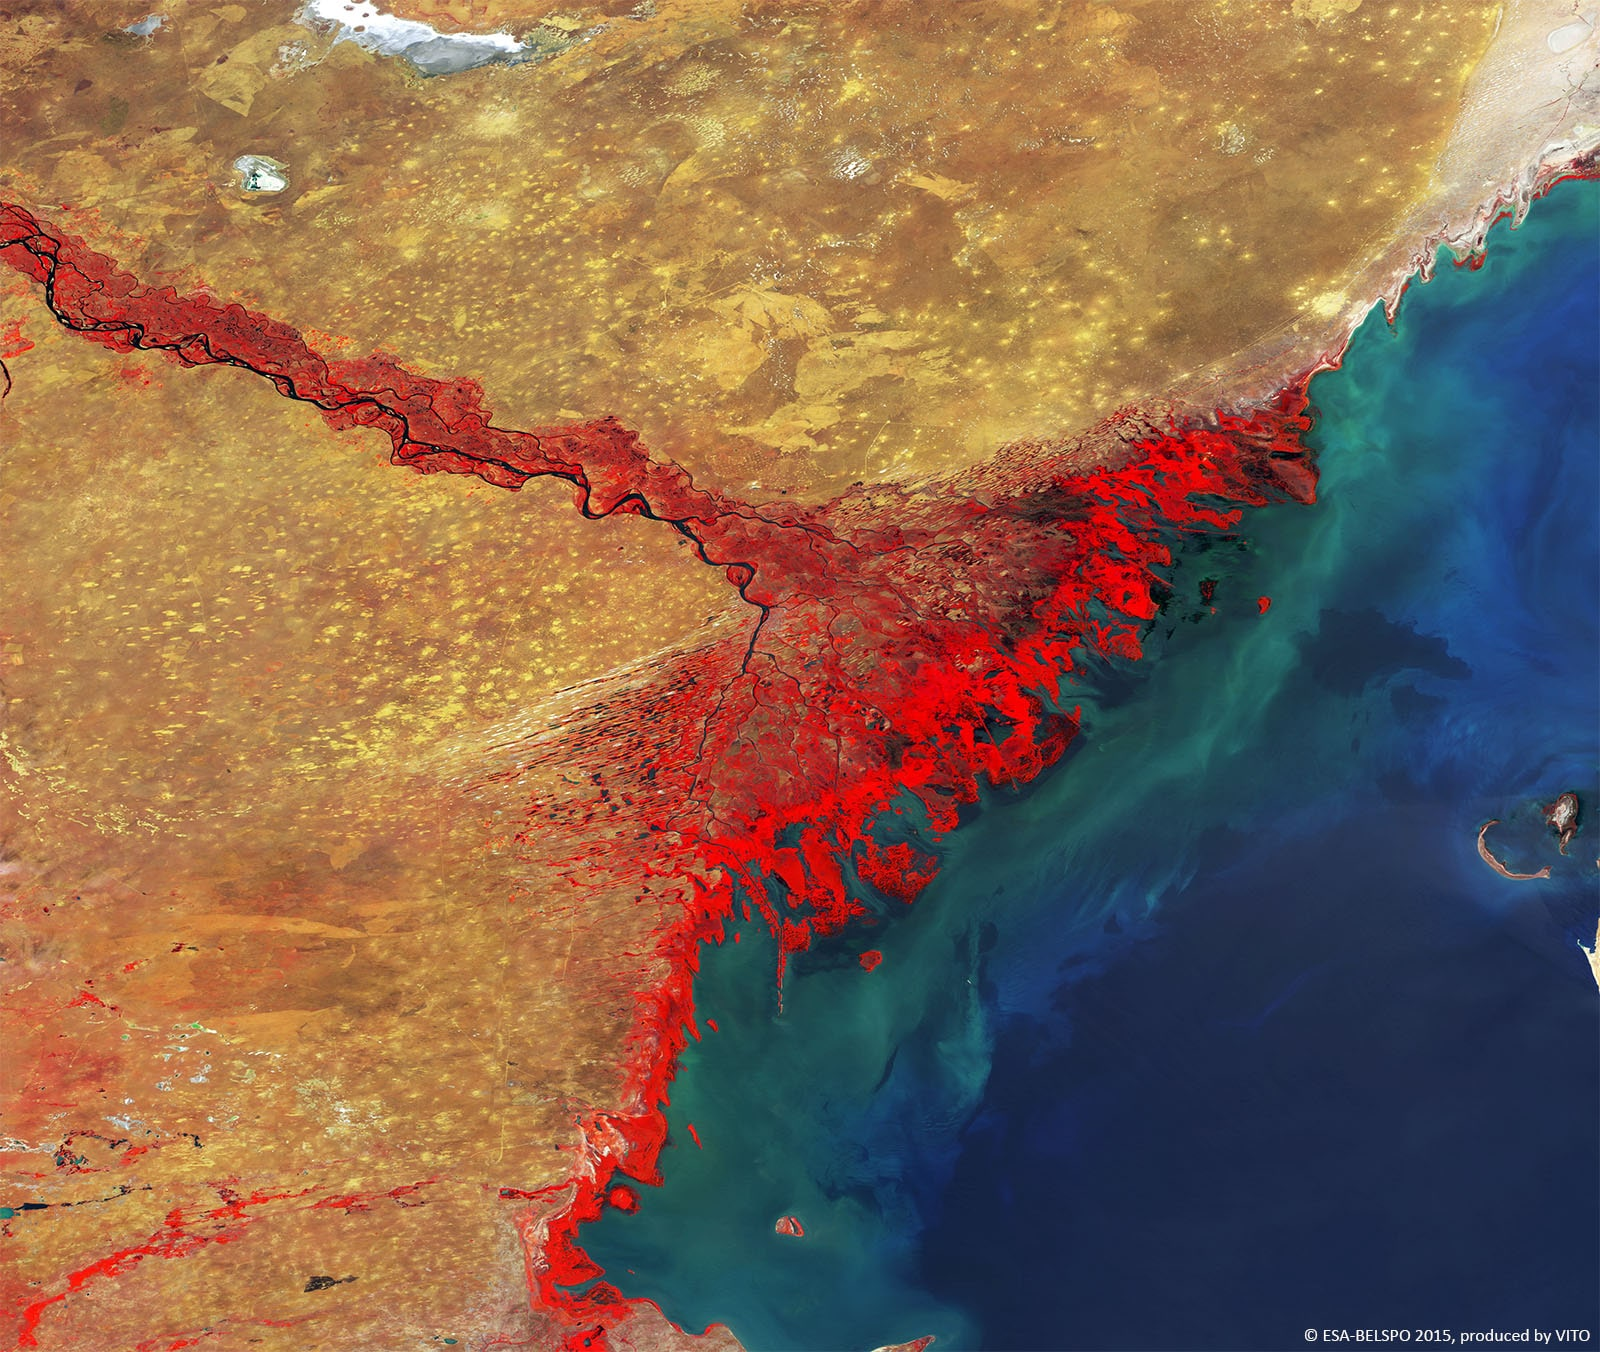 PROBA-V 100 m image of the Volga Delta, the largest river delta in Europe, and occurs where Europe's largest river system, the Volga River, drains into the Caspian Sea in Russia's Astrakhan Oblast-min